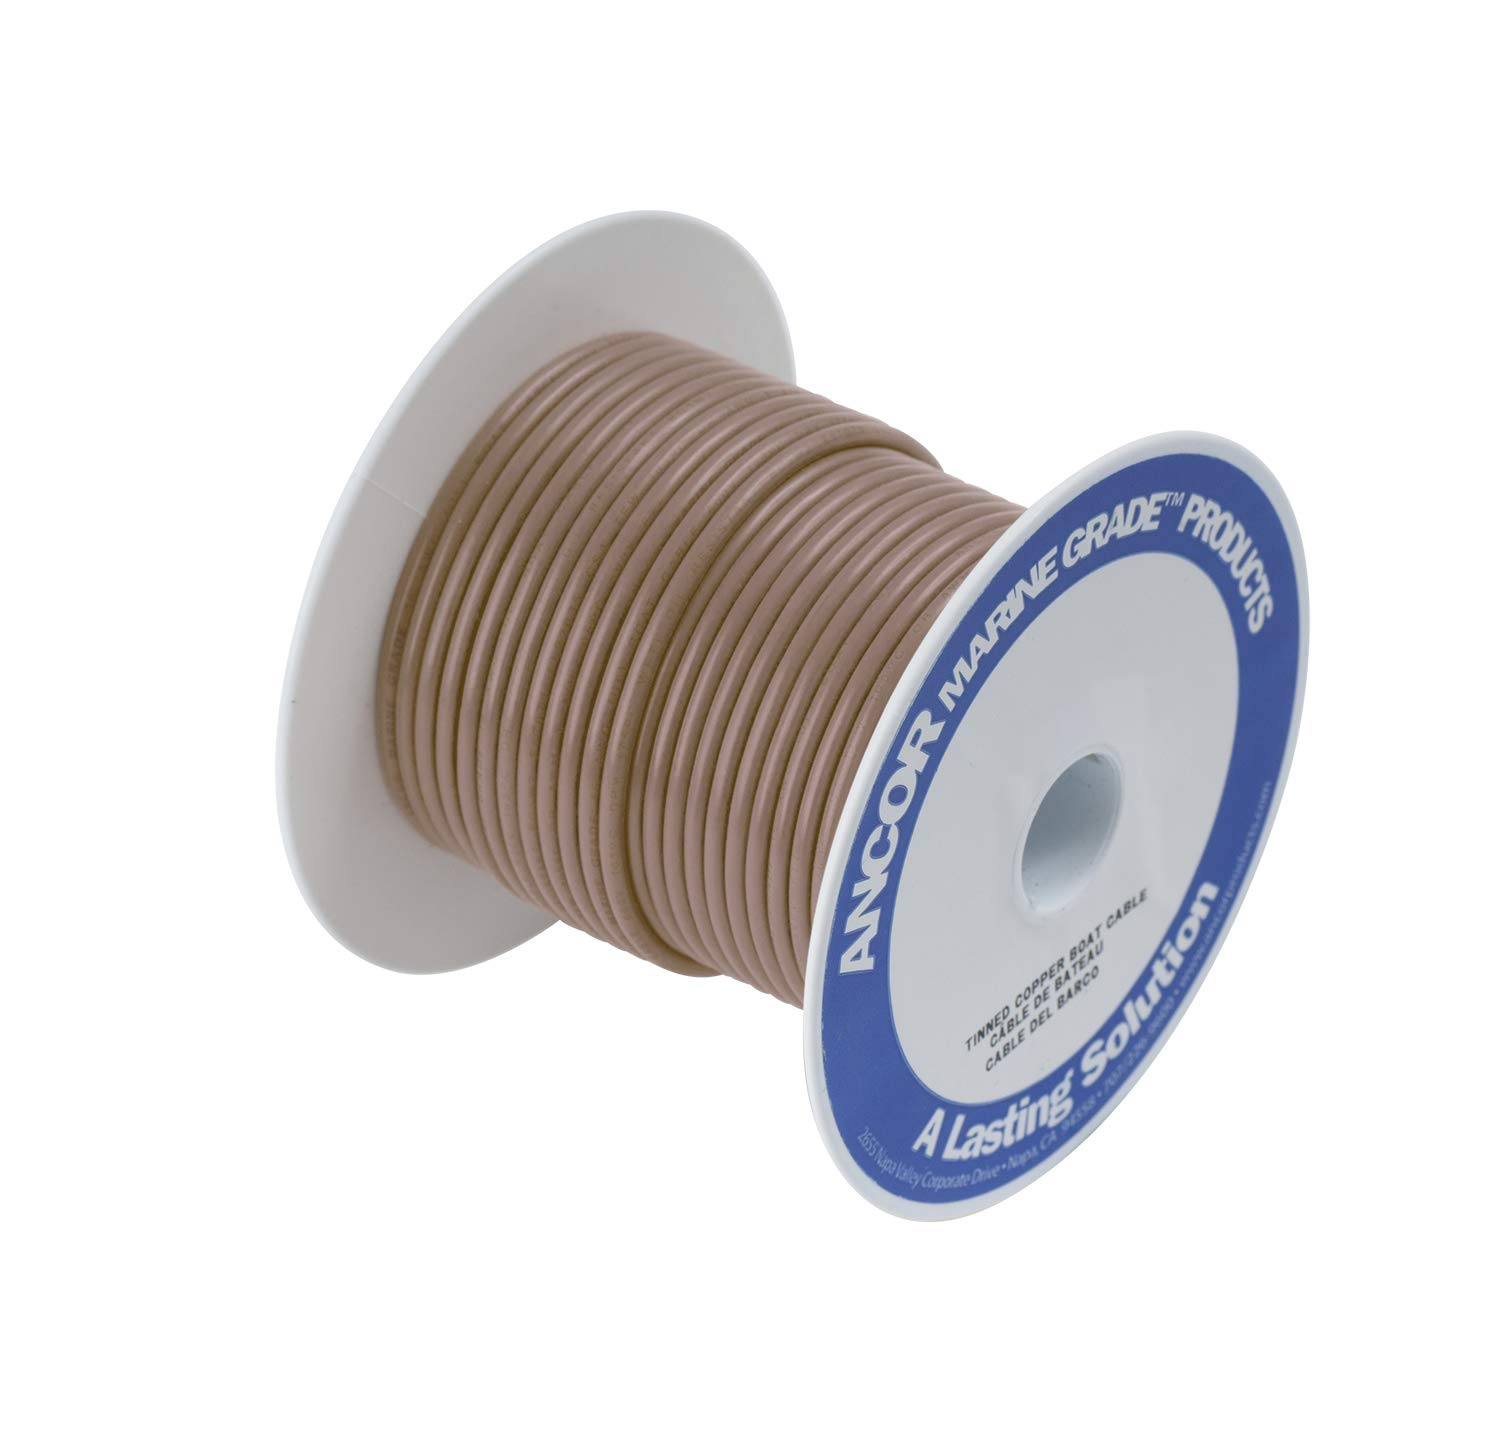 Ancor Marine Grade Products 12 Primary Wire, 500'